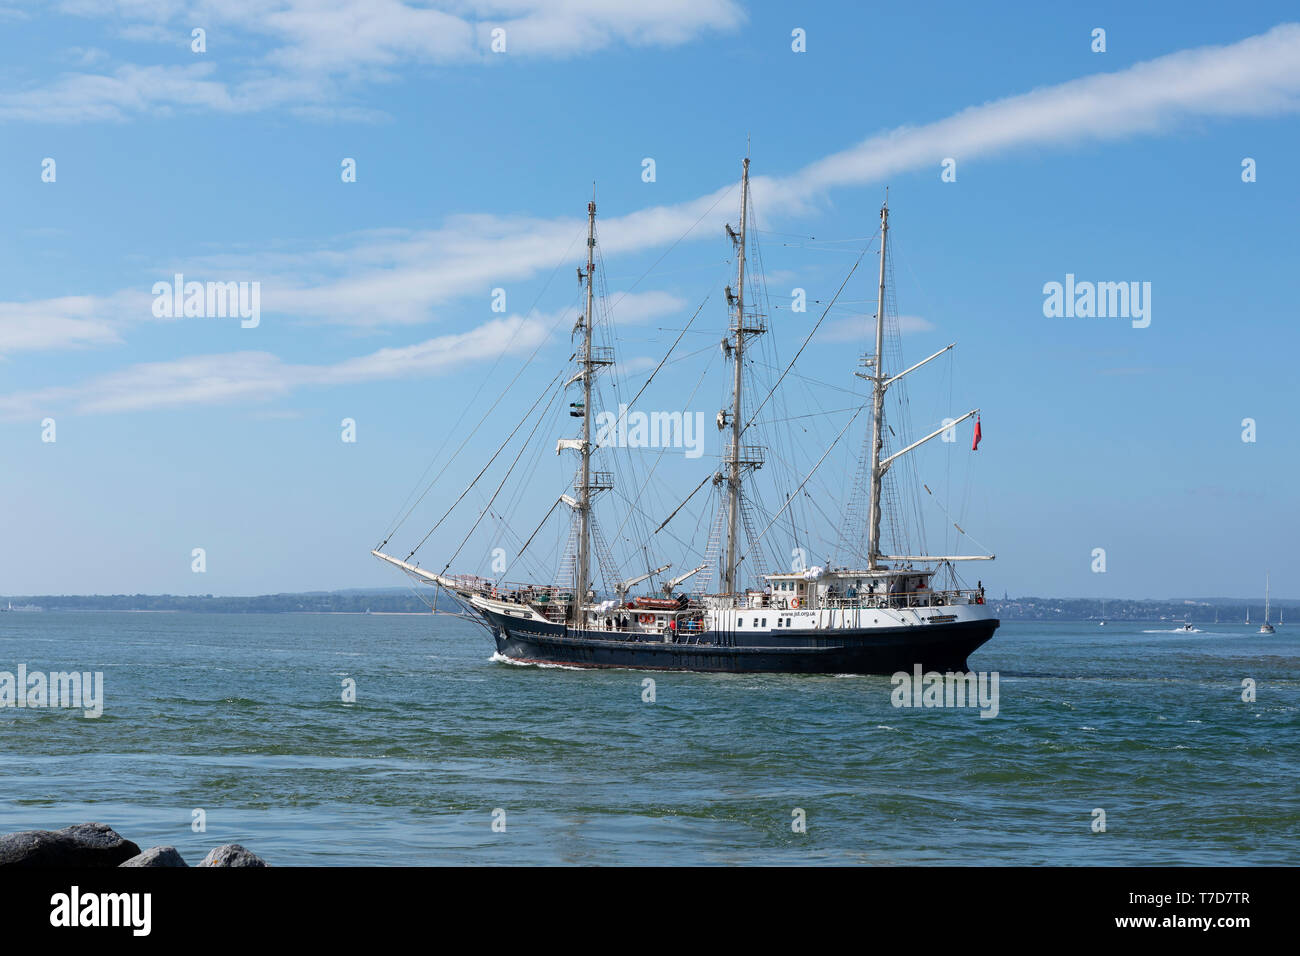 Three masted wooden ship Tenacious leaving Portsmouth harbour. A social inclusion ship for able bodied and disabled alike. - Stock Image